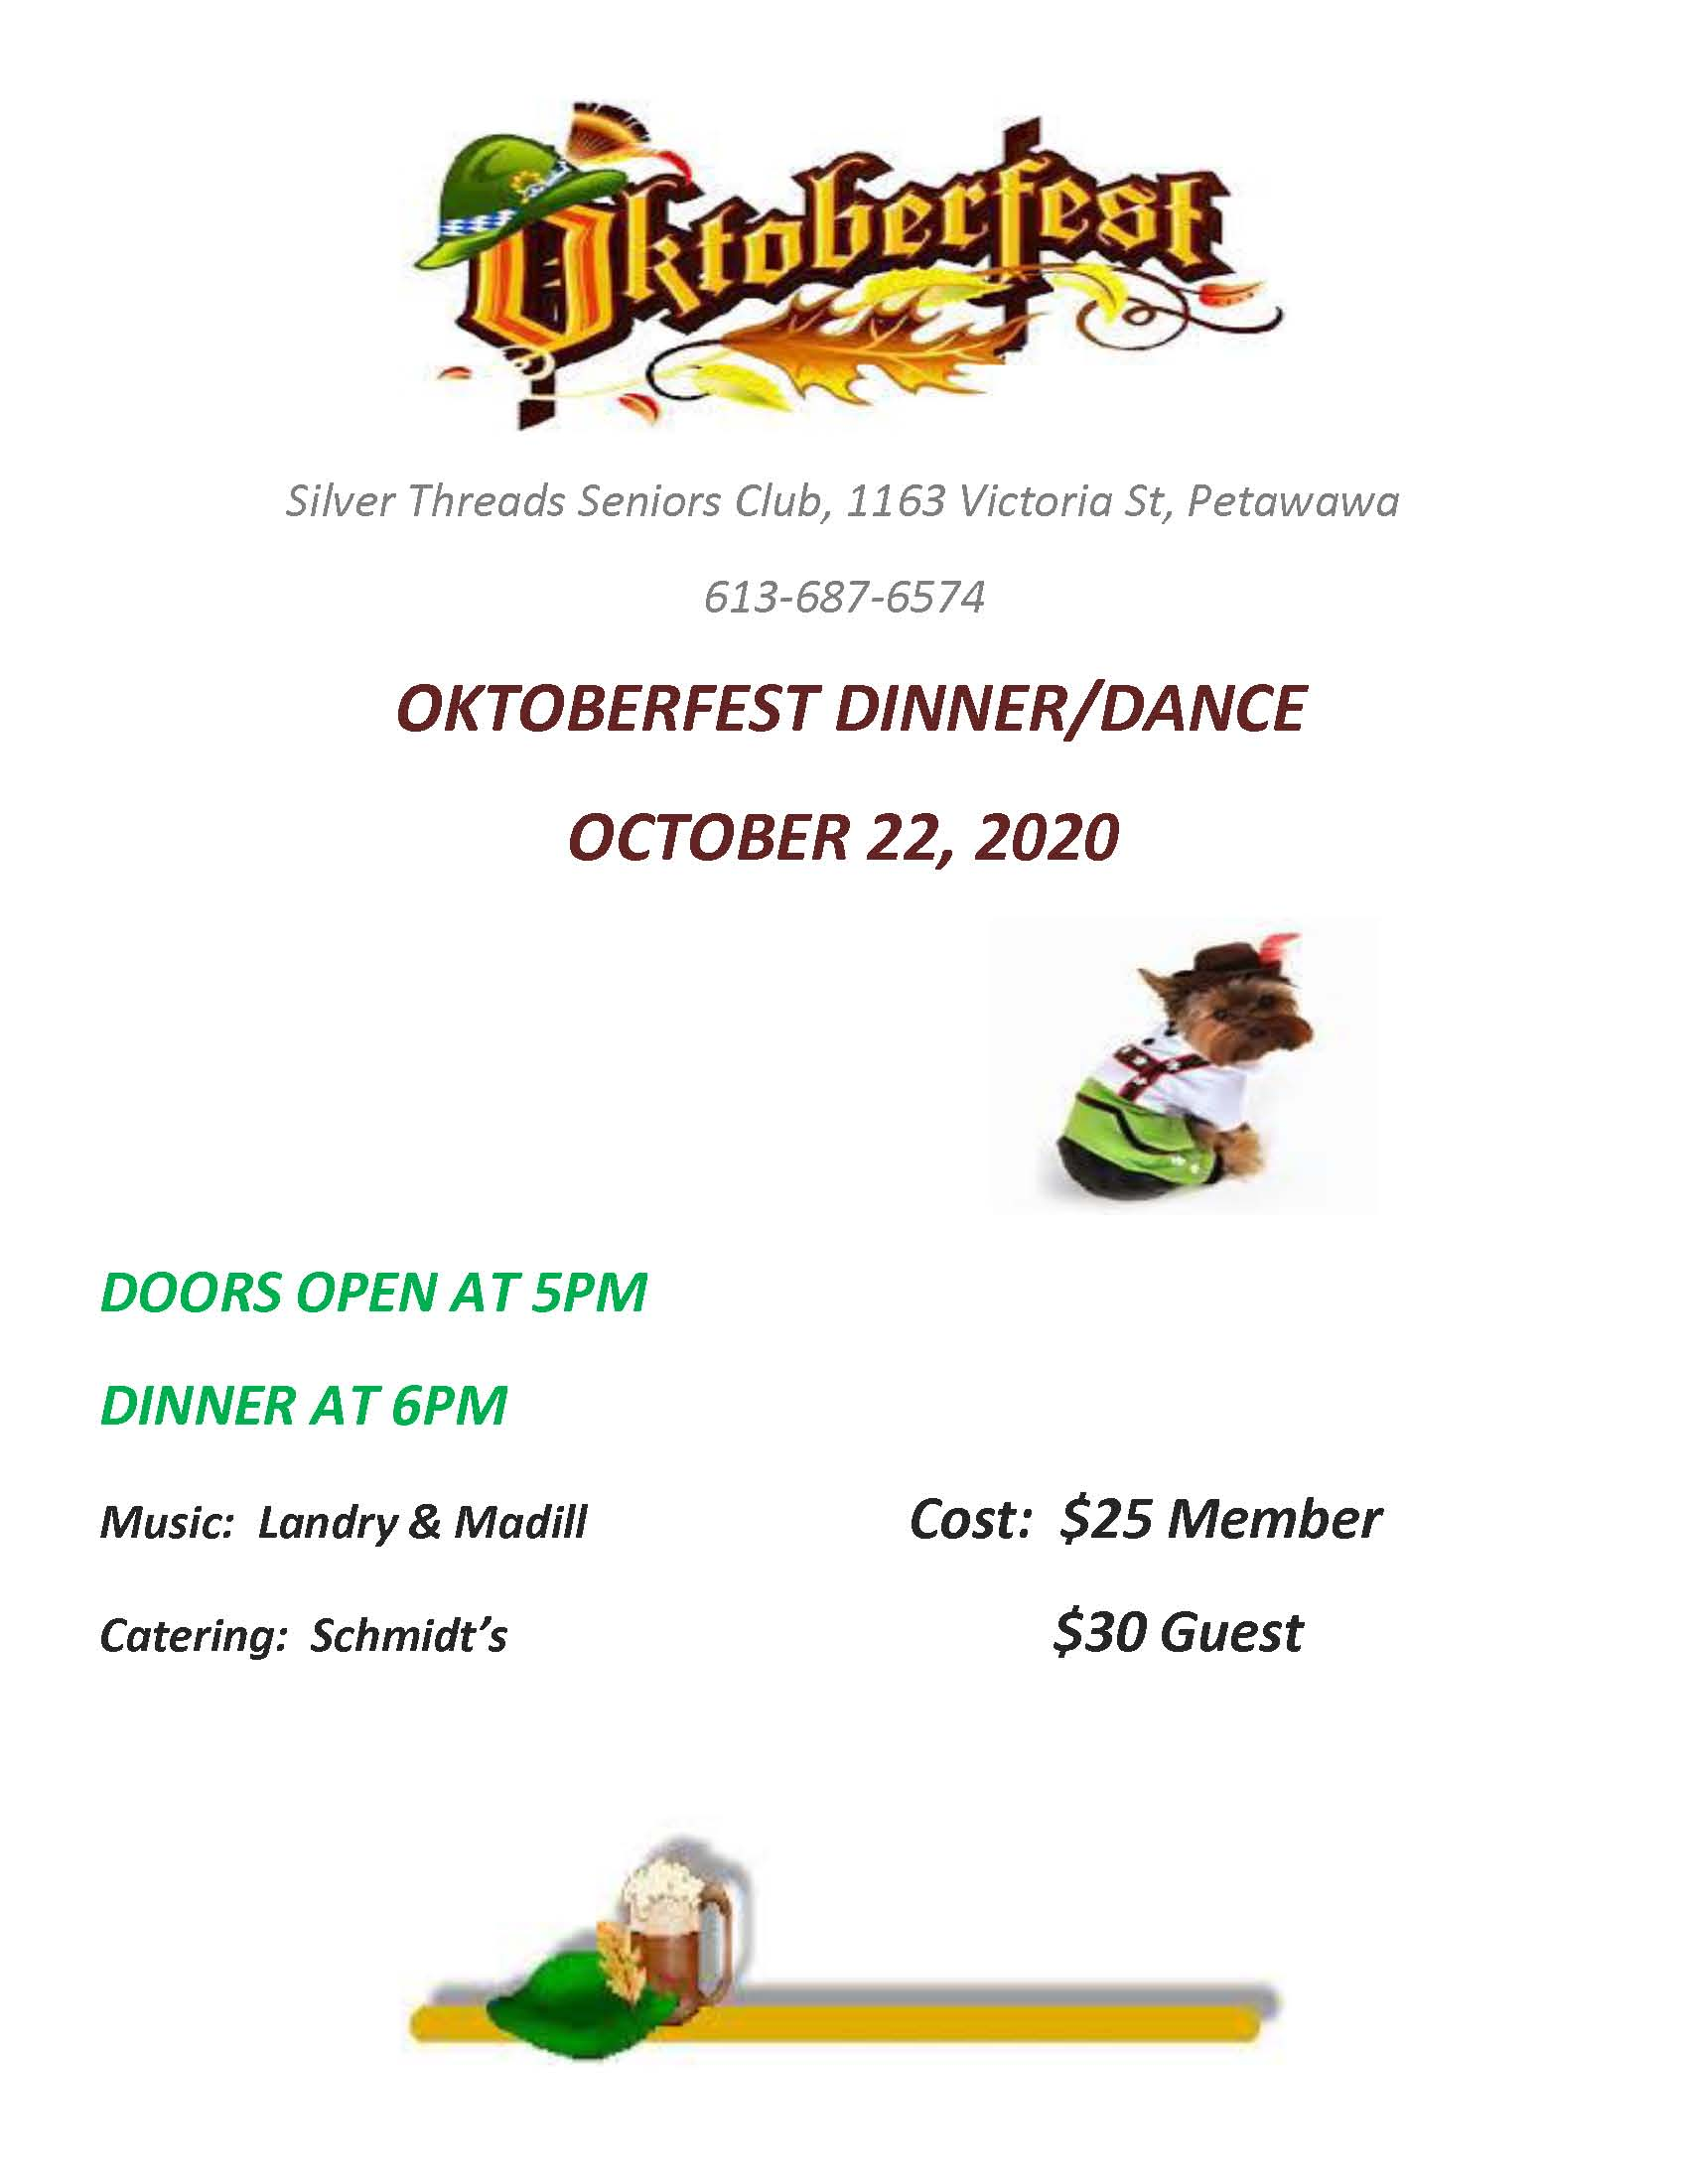 Image of Oktoberfest dinner and dance poster